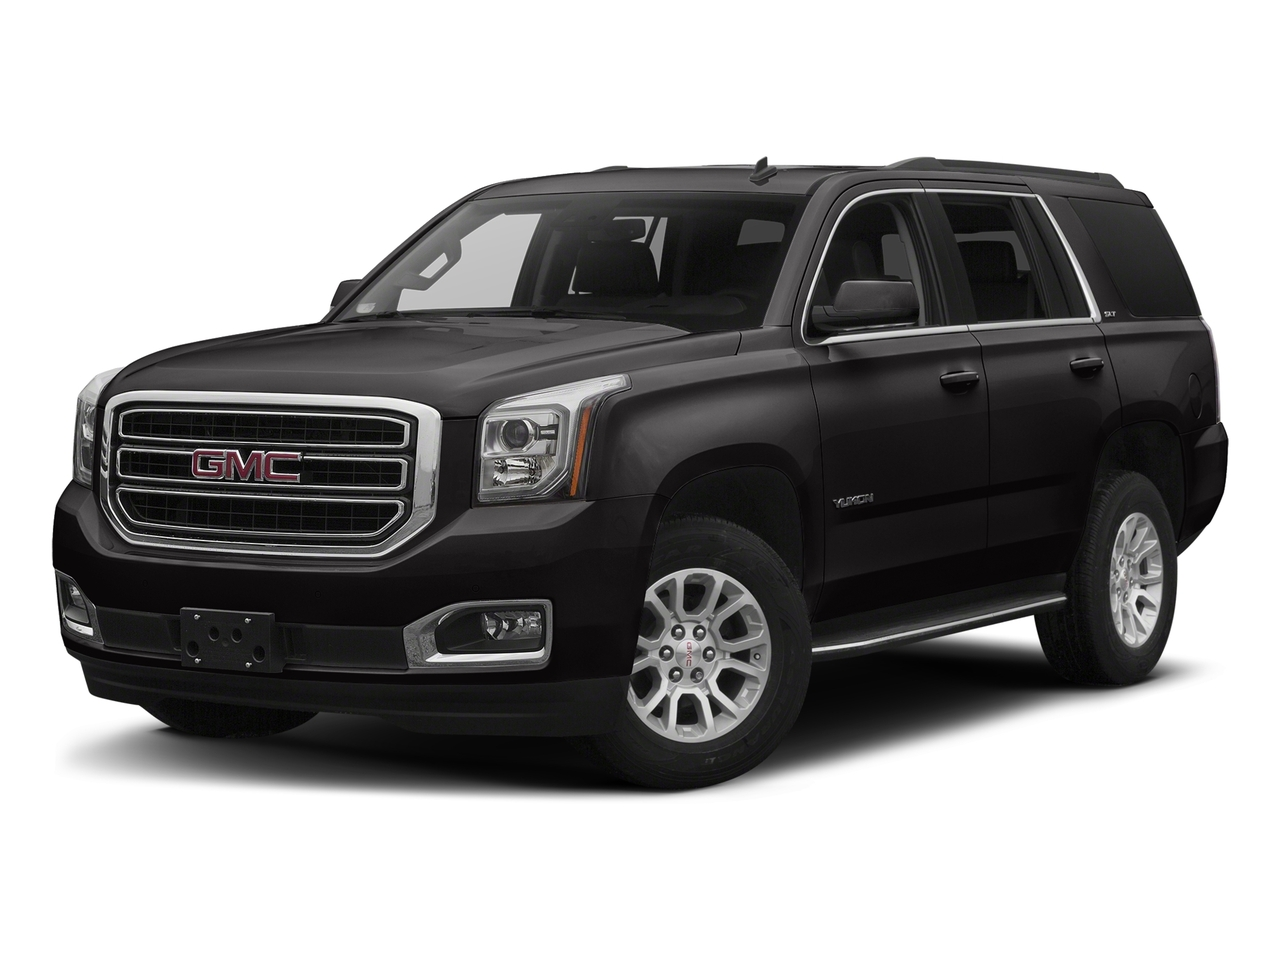 Onyx Black 2017 GMC Yukon SLT SUV Lexington NC